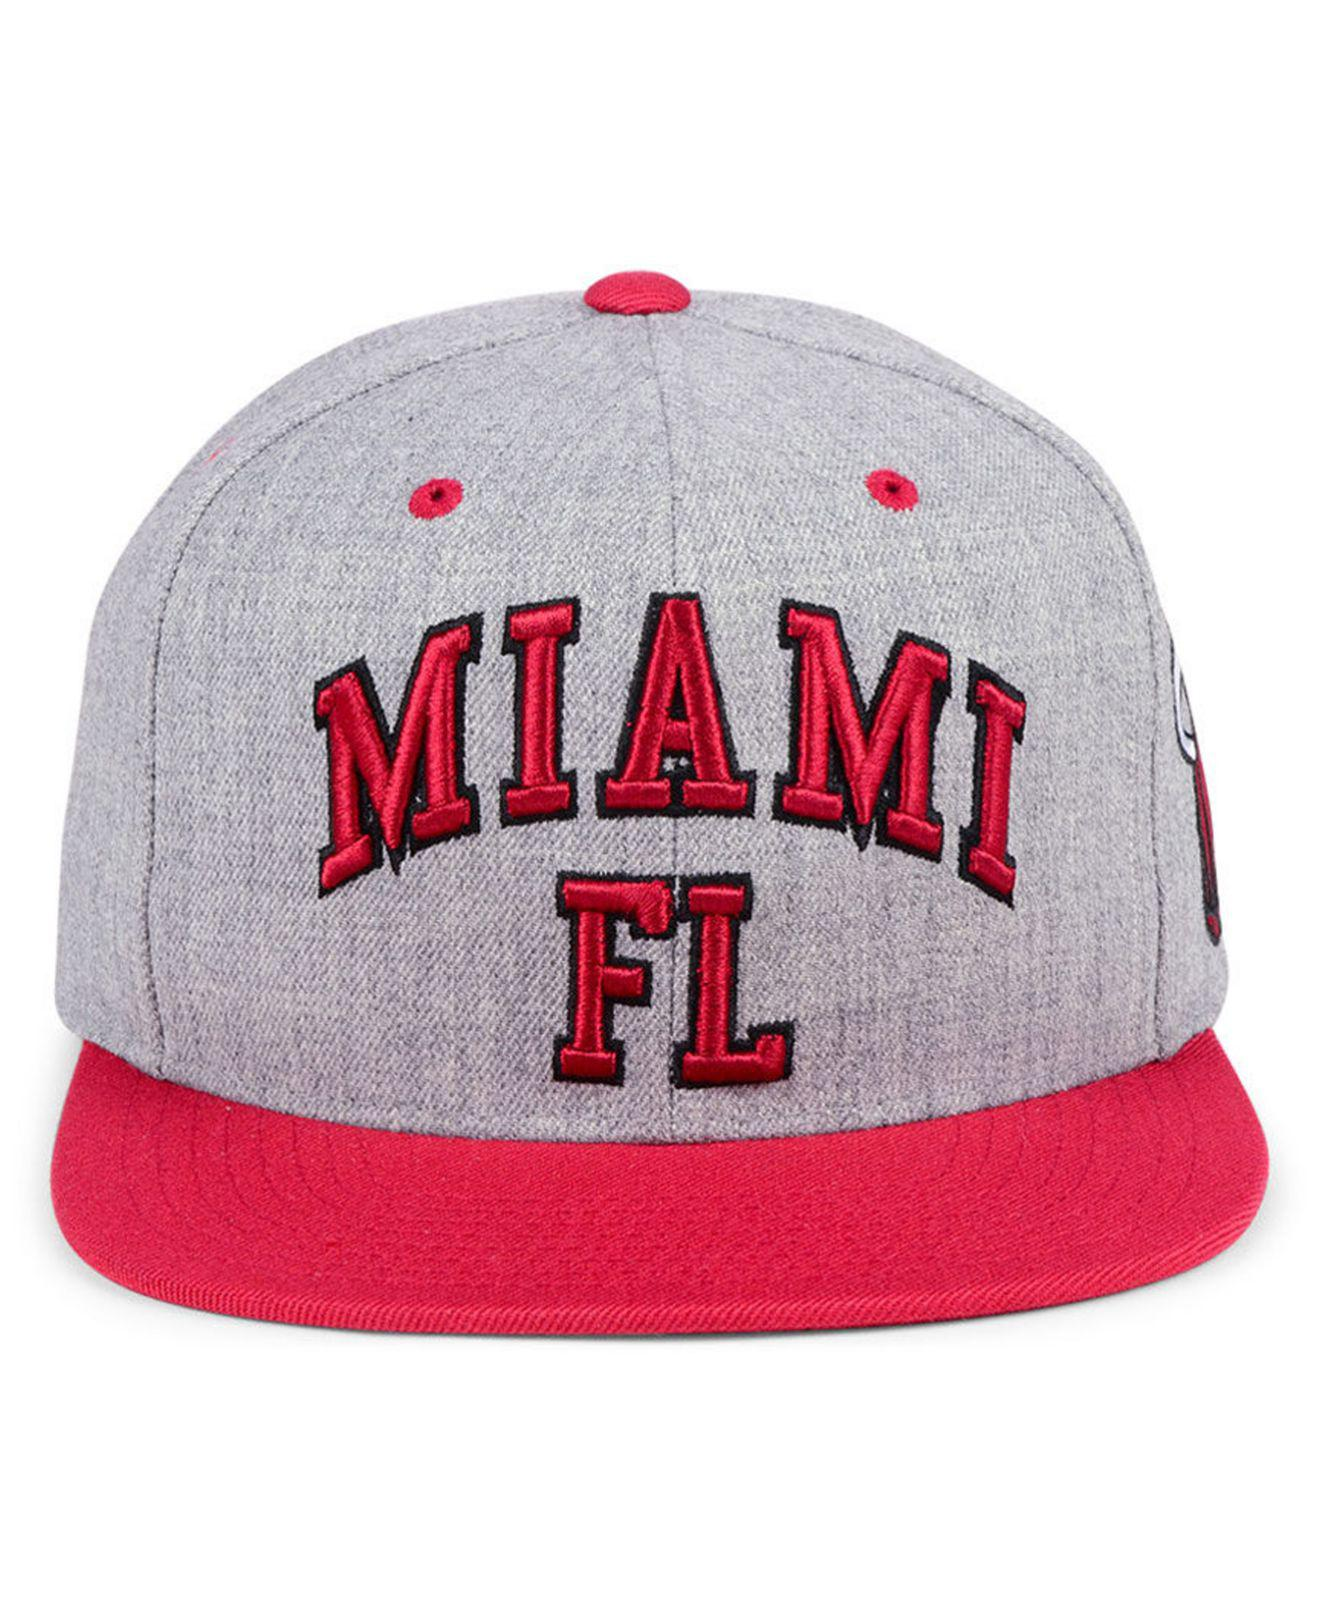 buy popular 4b129 f1246 ... sale lyst mitchell ness miami heat side panel cropped snapback cap for  men a75c3 b1d53